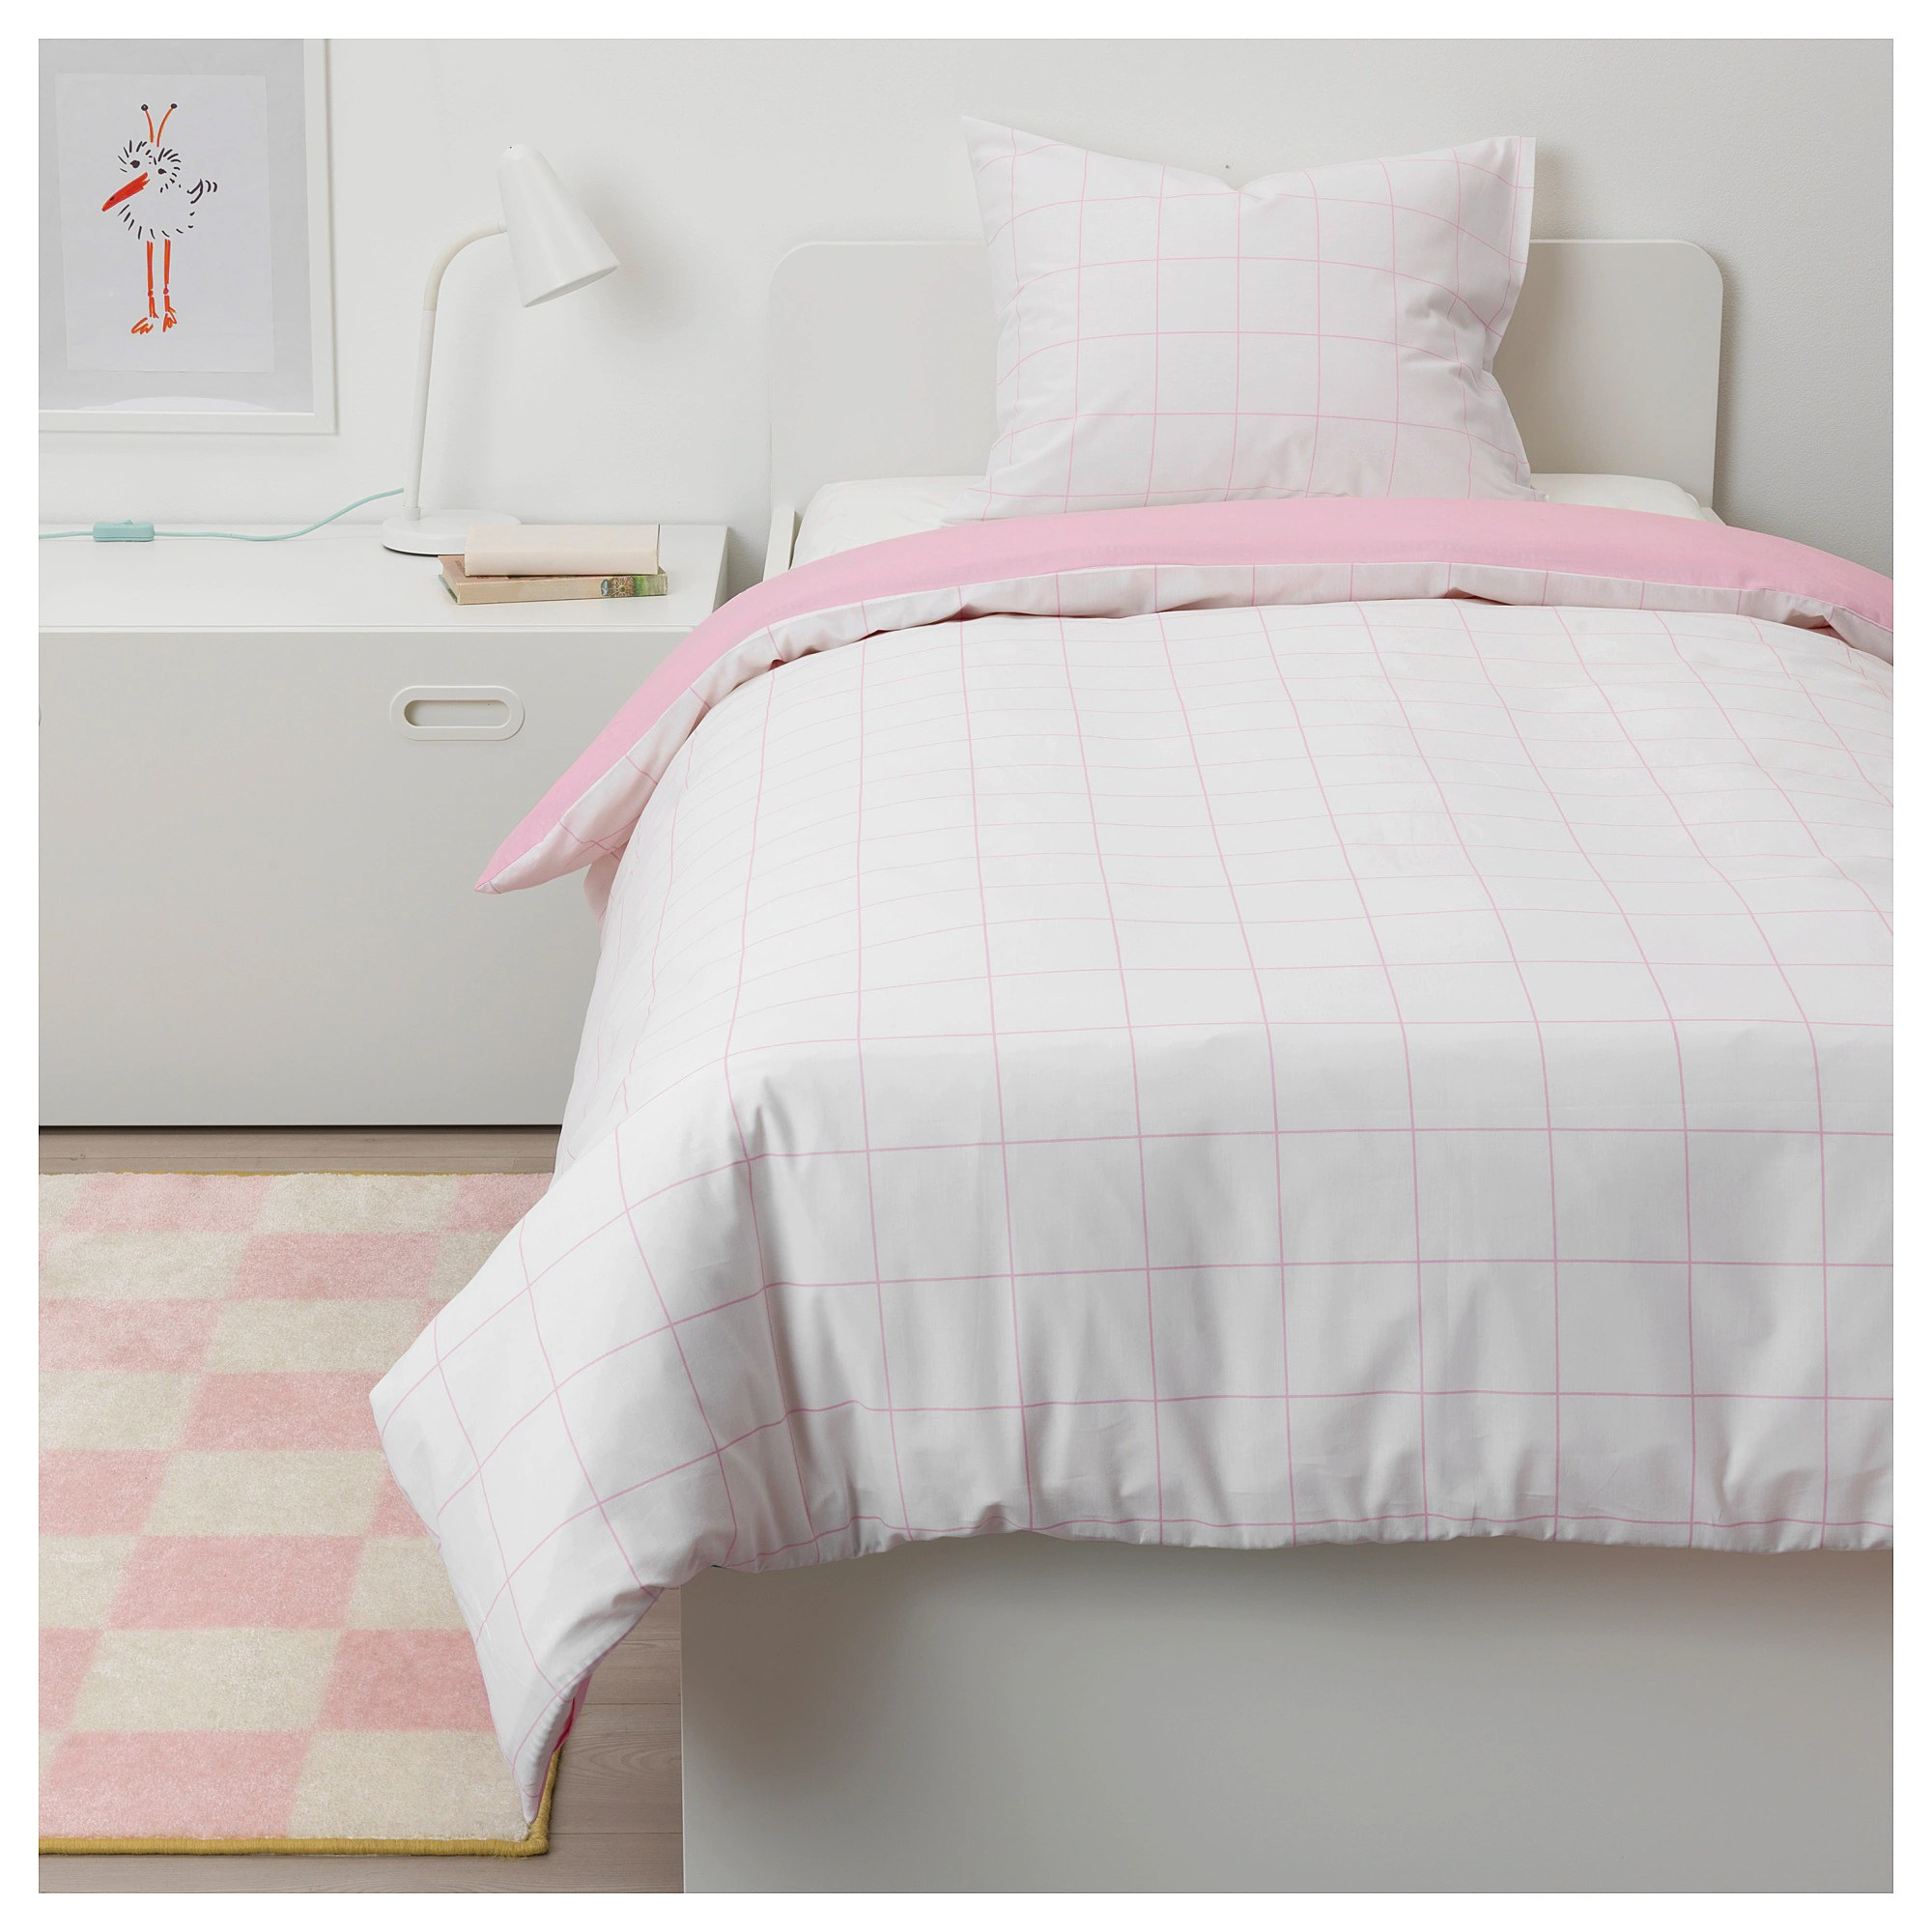 Pink Duvet Cover MÖjlighet Duvet Cover And Pillowcase S Pink Graphical Patterned